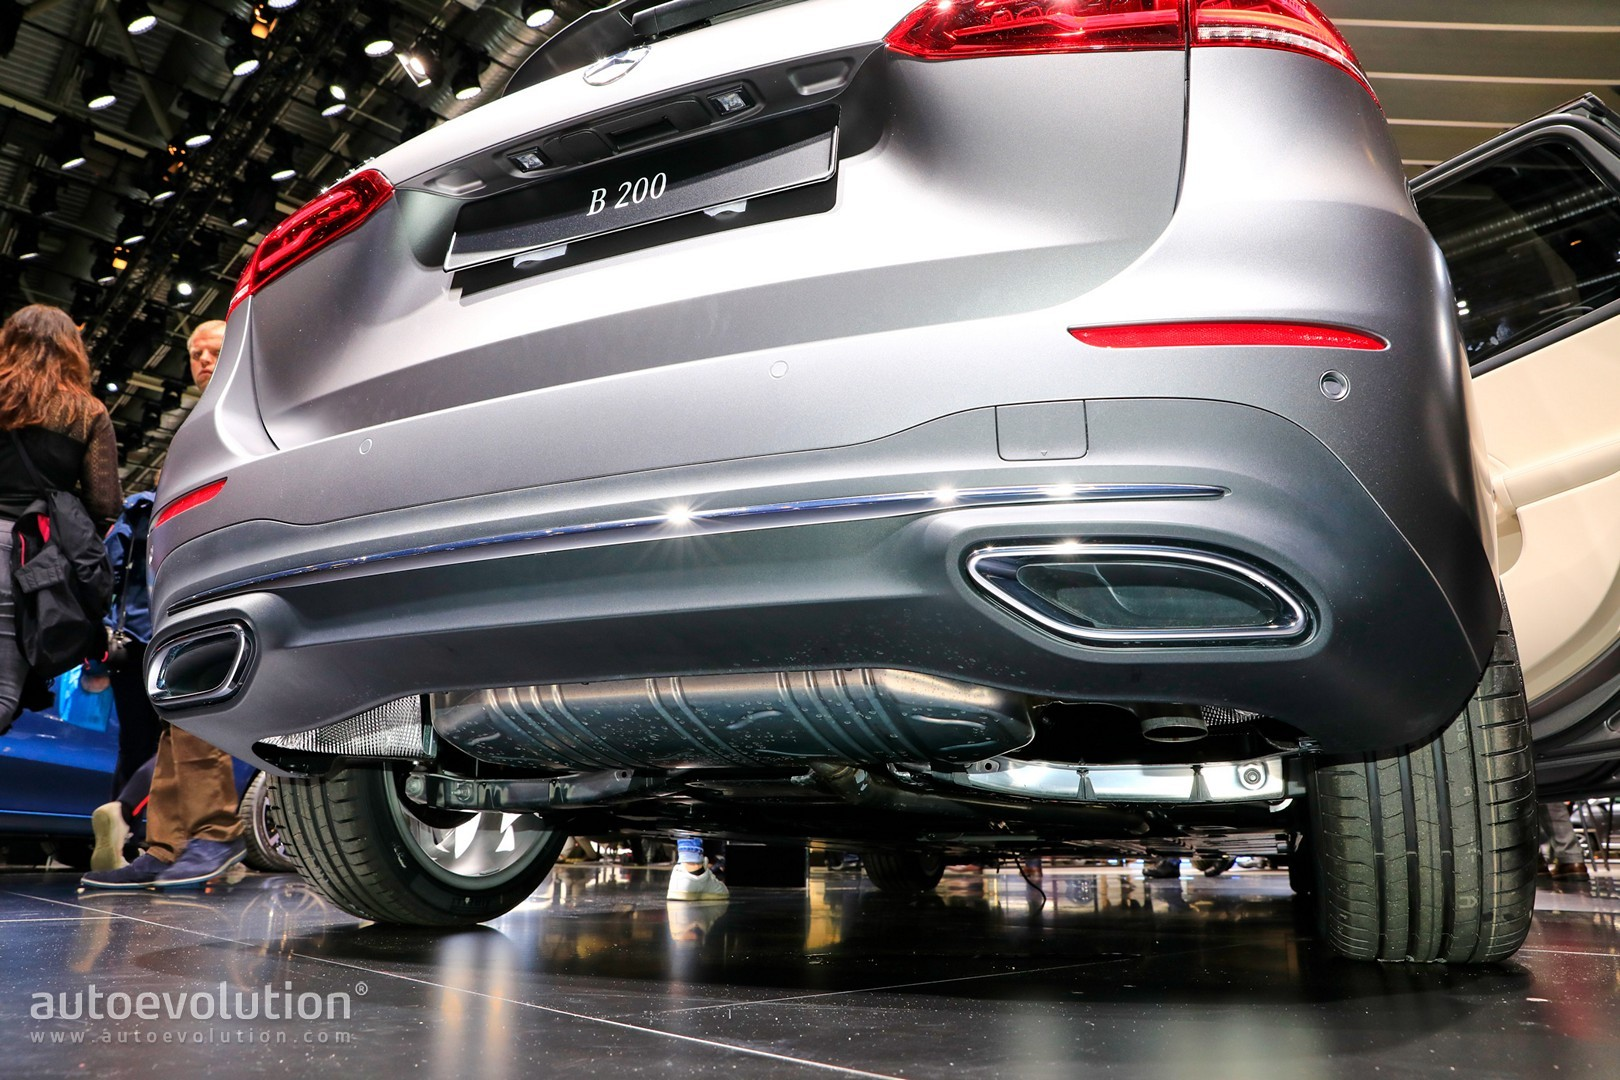 Fake Exhausts Invade 2018 Paris Motor Show And Mercedes Is